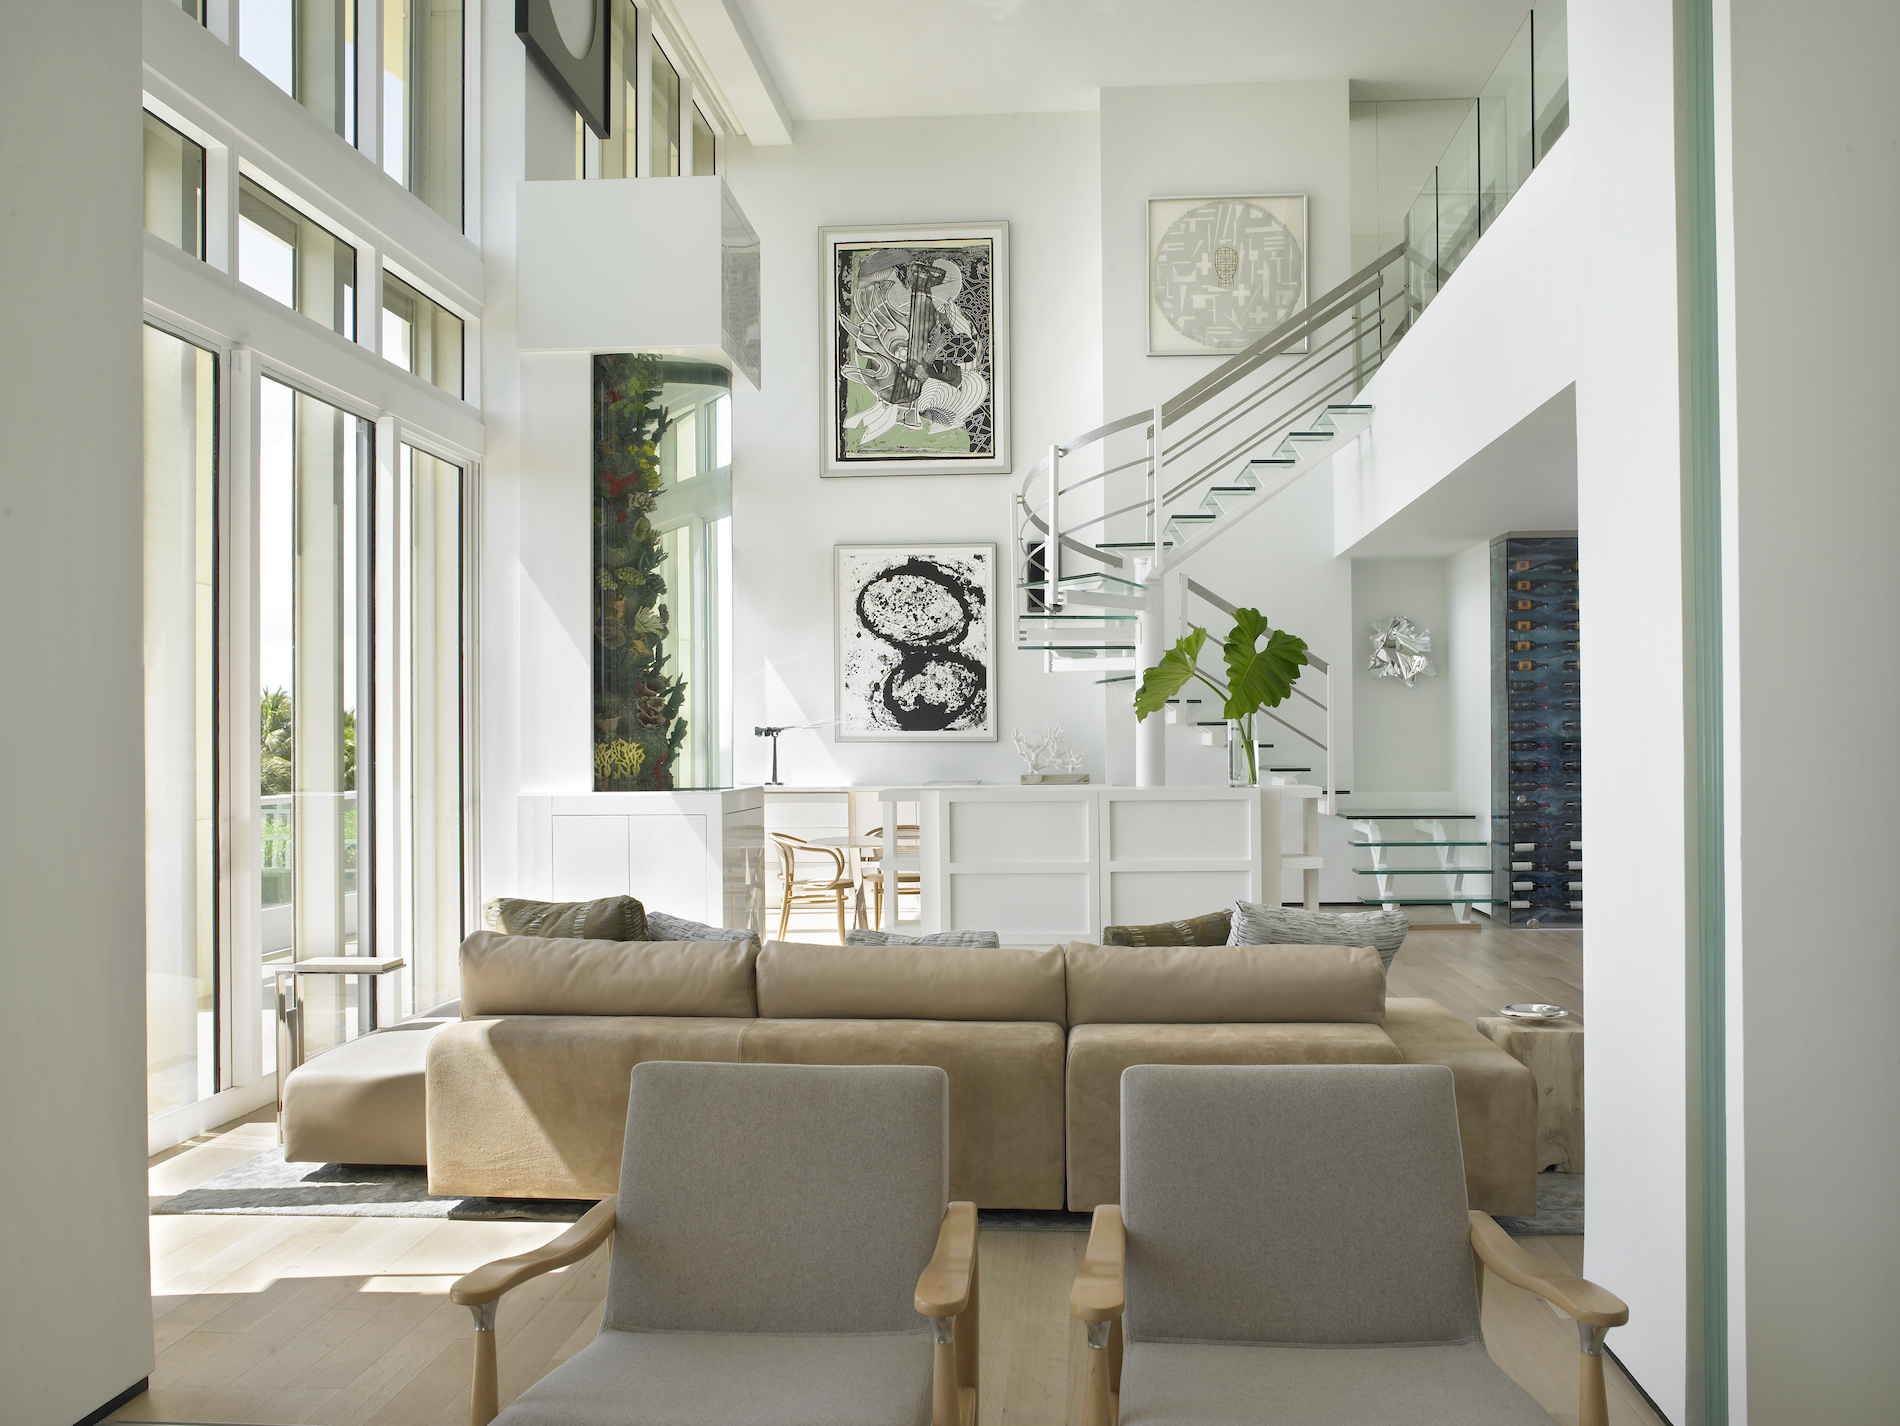 This modern home designed by Michael Wolk is located directly on Miami Beach. The open, double-height living room takes advantage of the enviable ocean views and highlights the owner's impressive art collection.